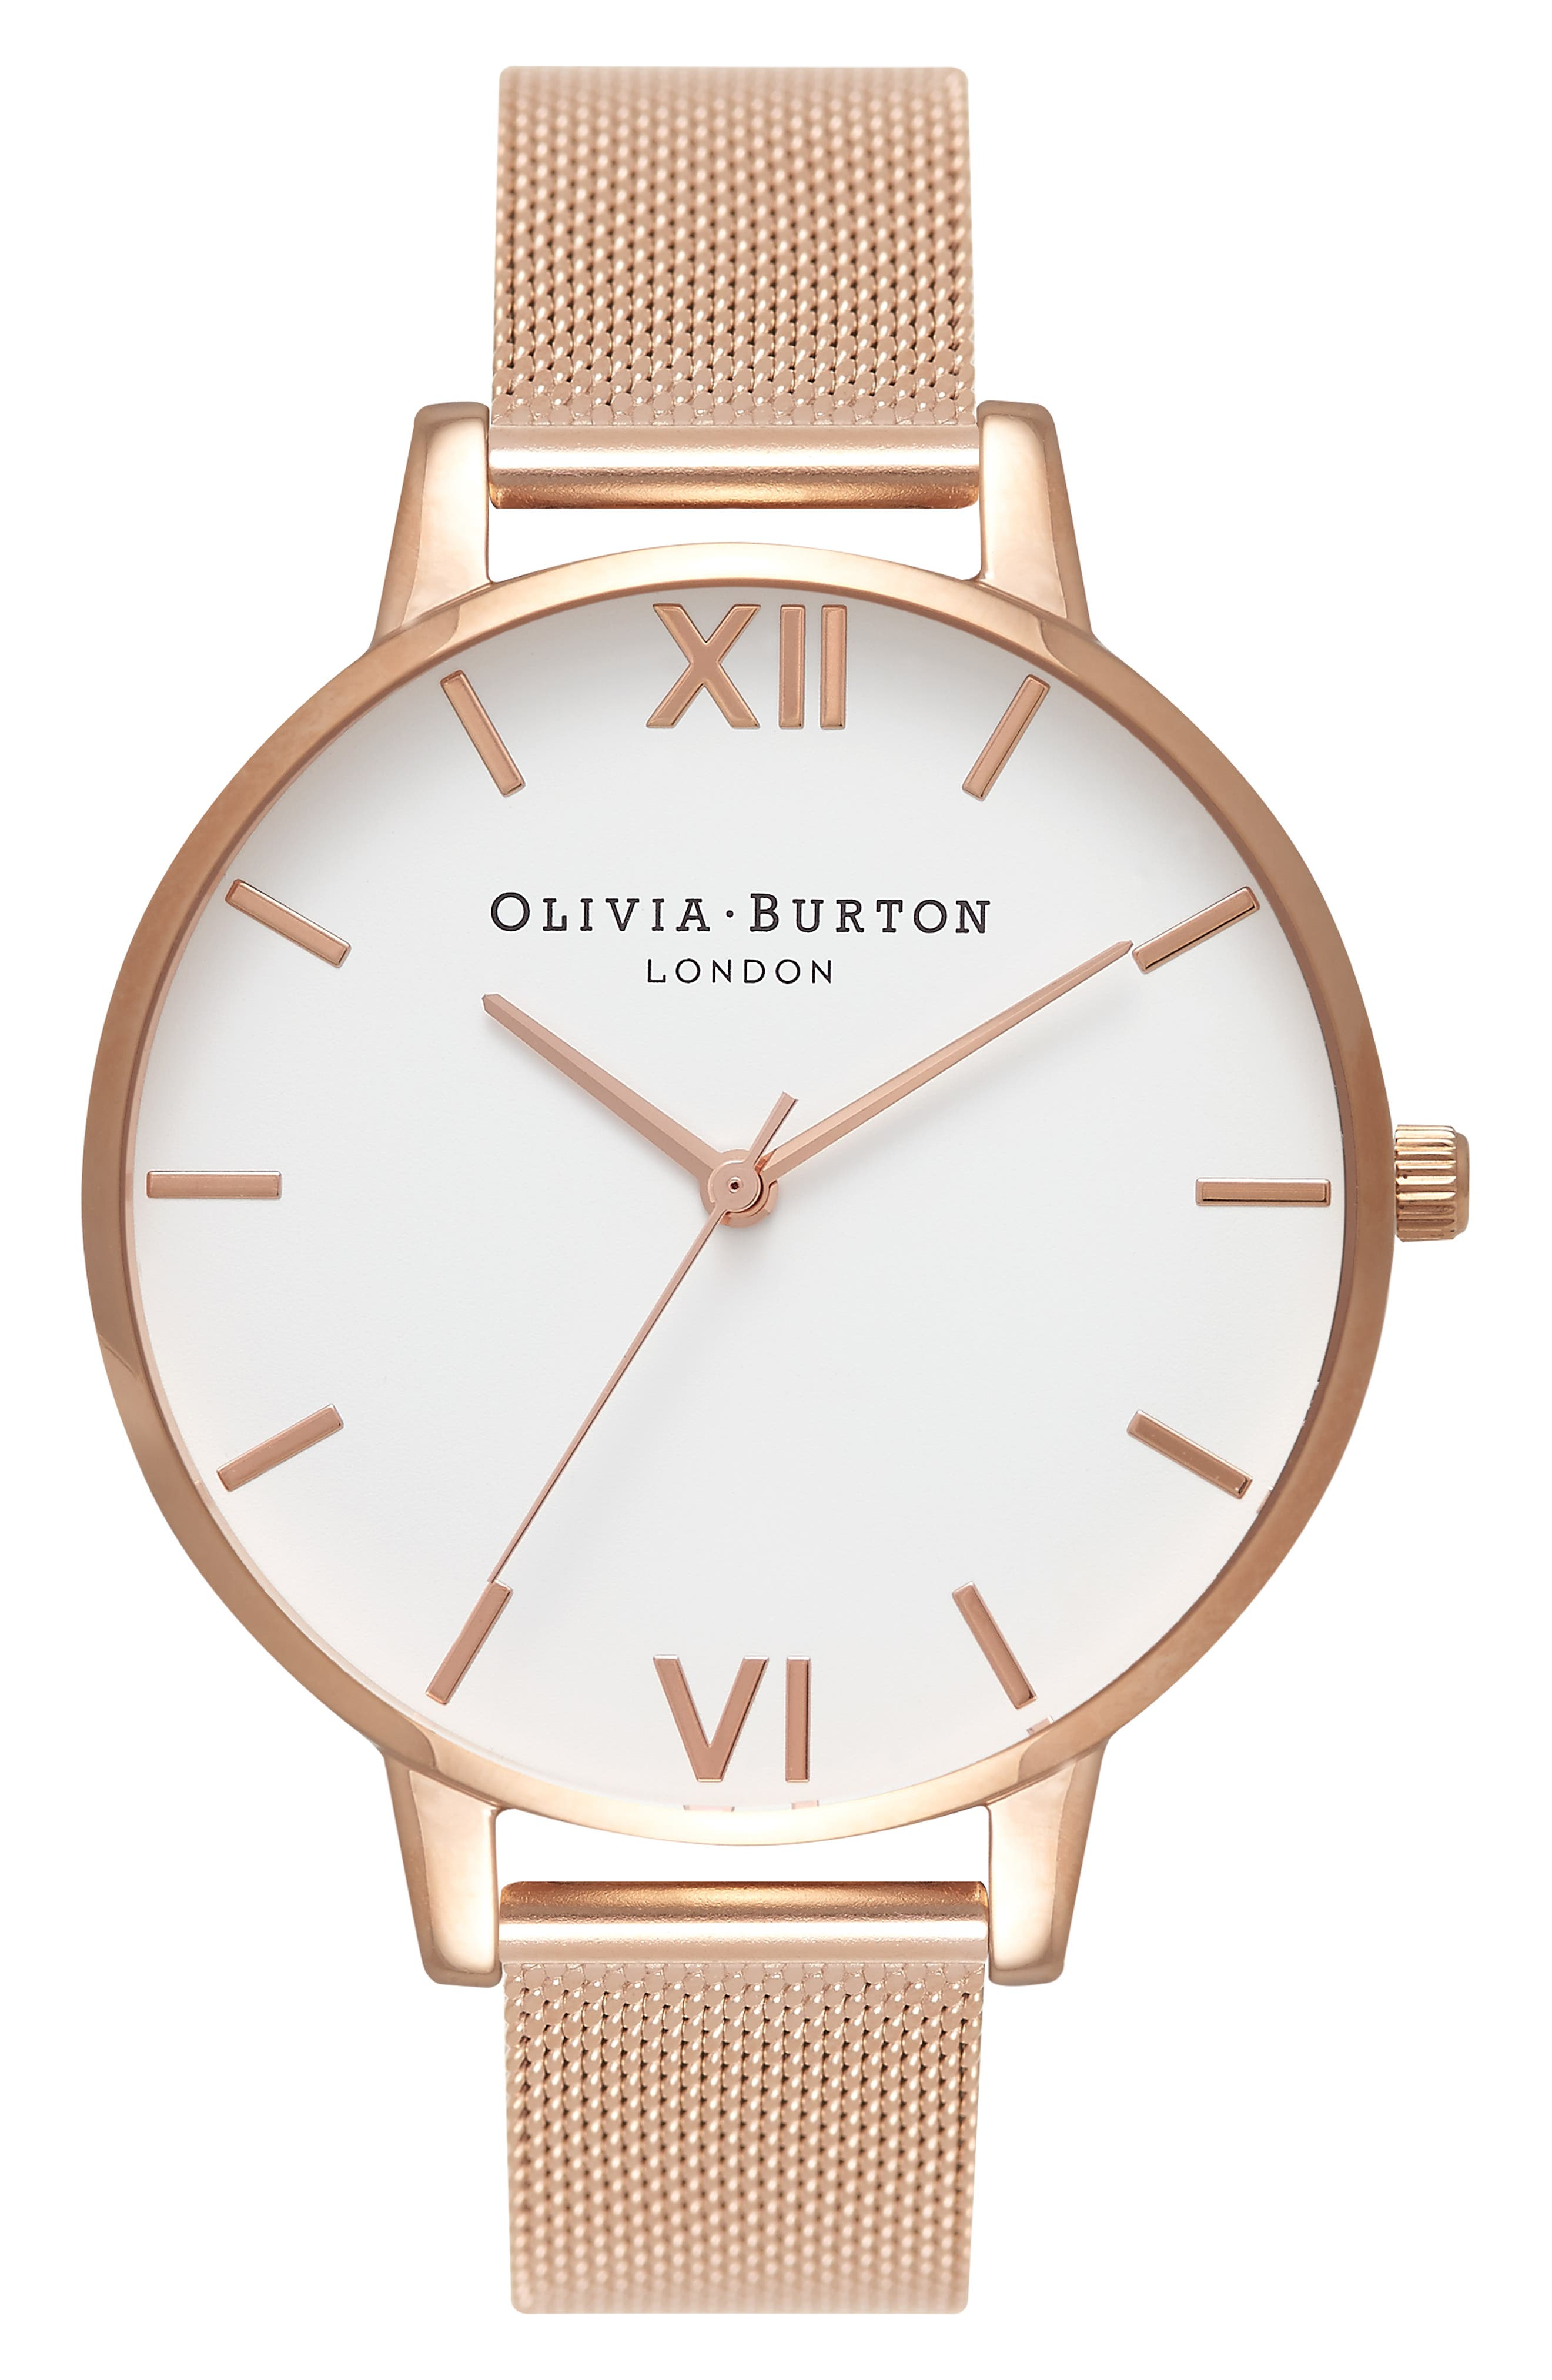 OLIVIA BURTON 'Big Dial' Mesh Strap Watch, 38mm, Main, color, ROSE GOLD/ WHITE